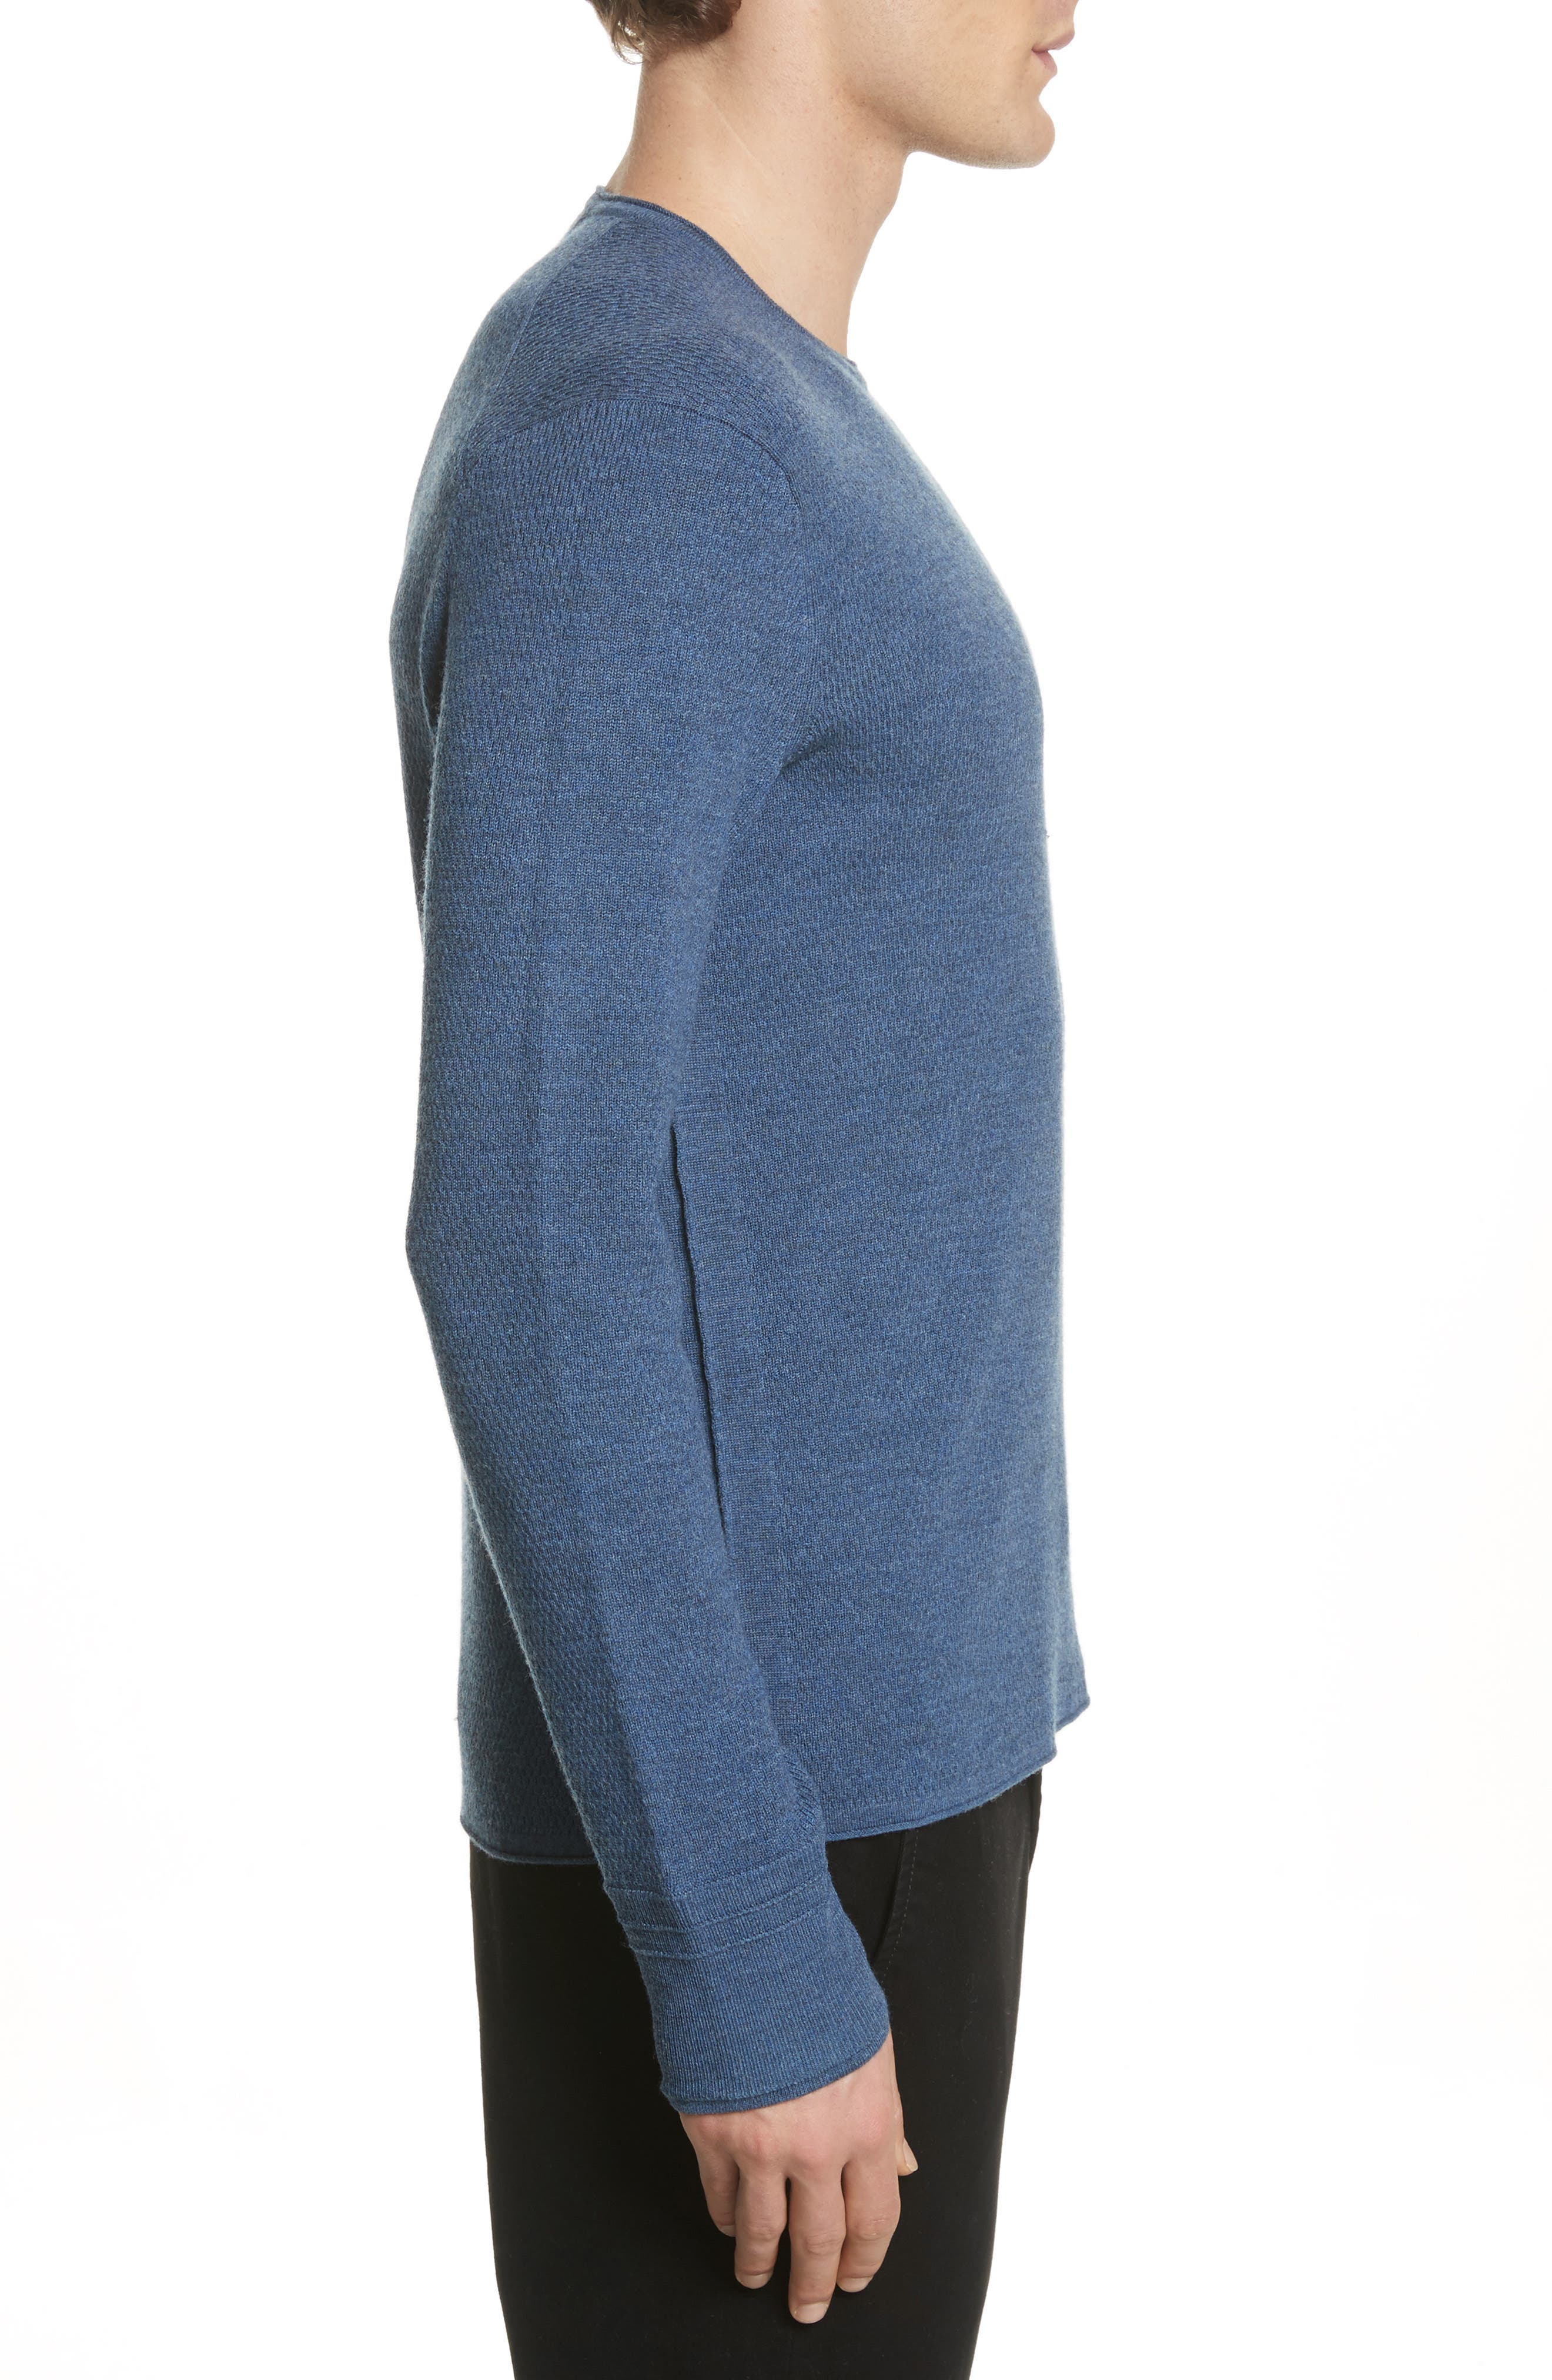 Gregory Merino Wool Blend Crewneck Sweater,                             Alternate thumbnail 3, color,                             Heather Blue